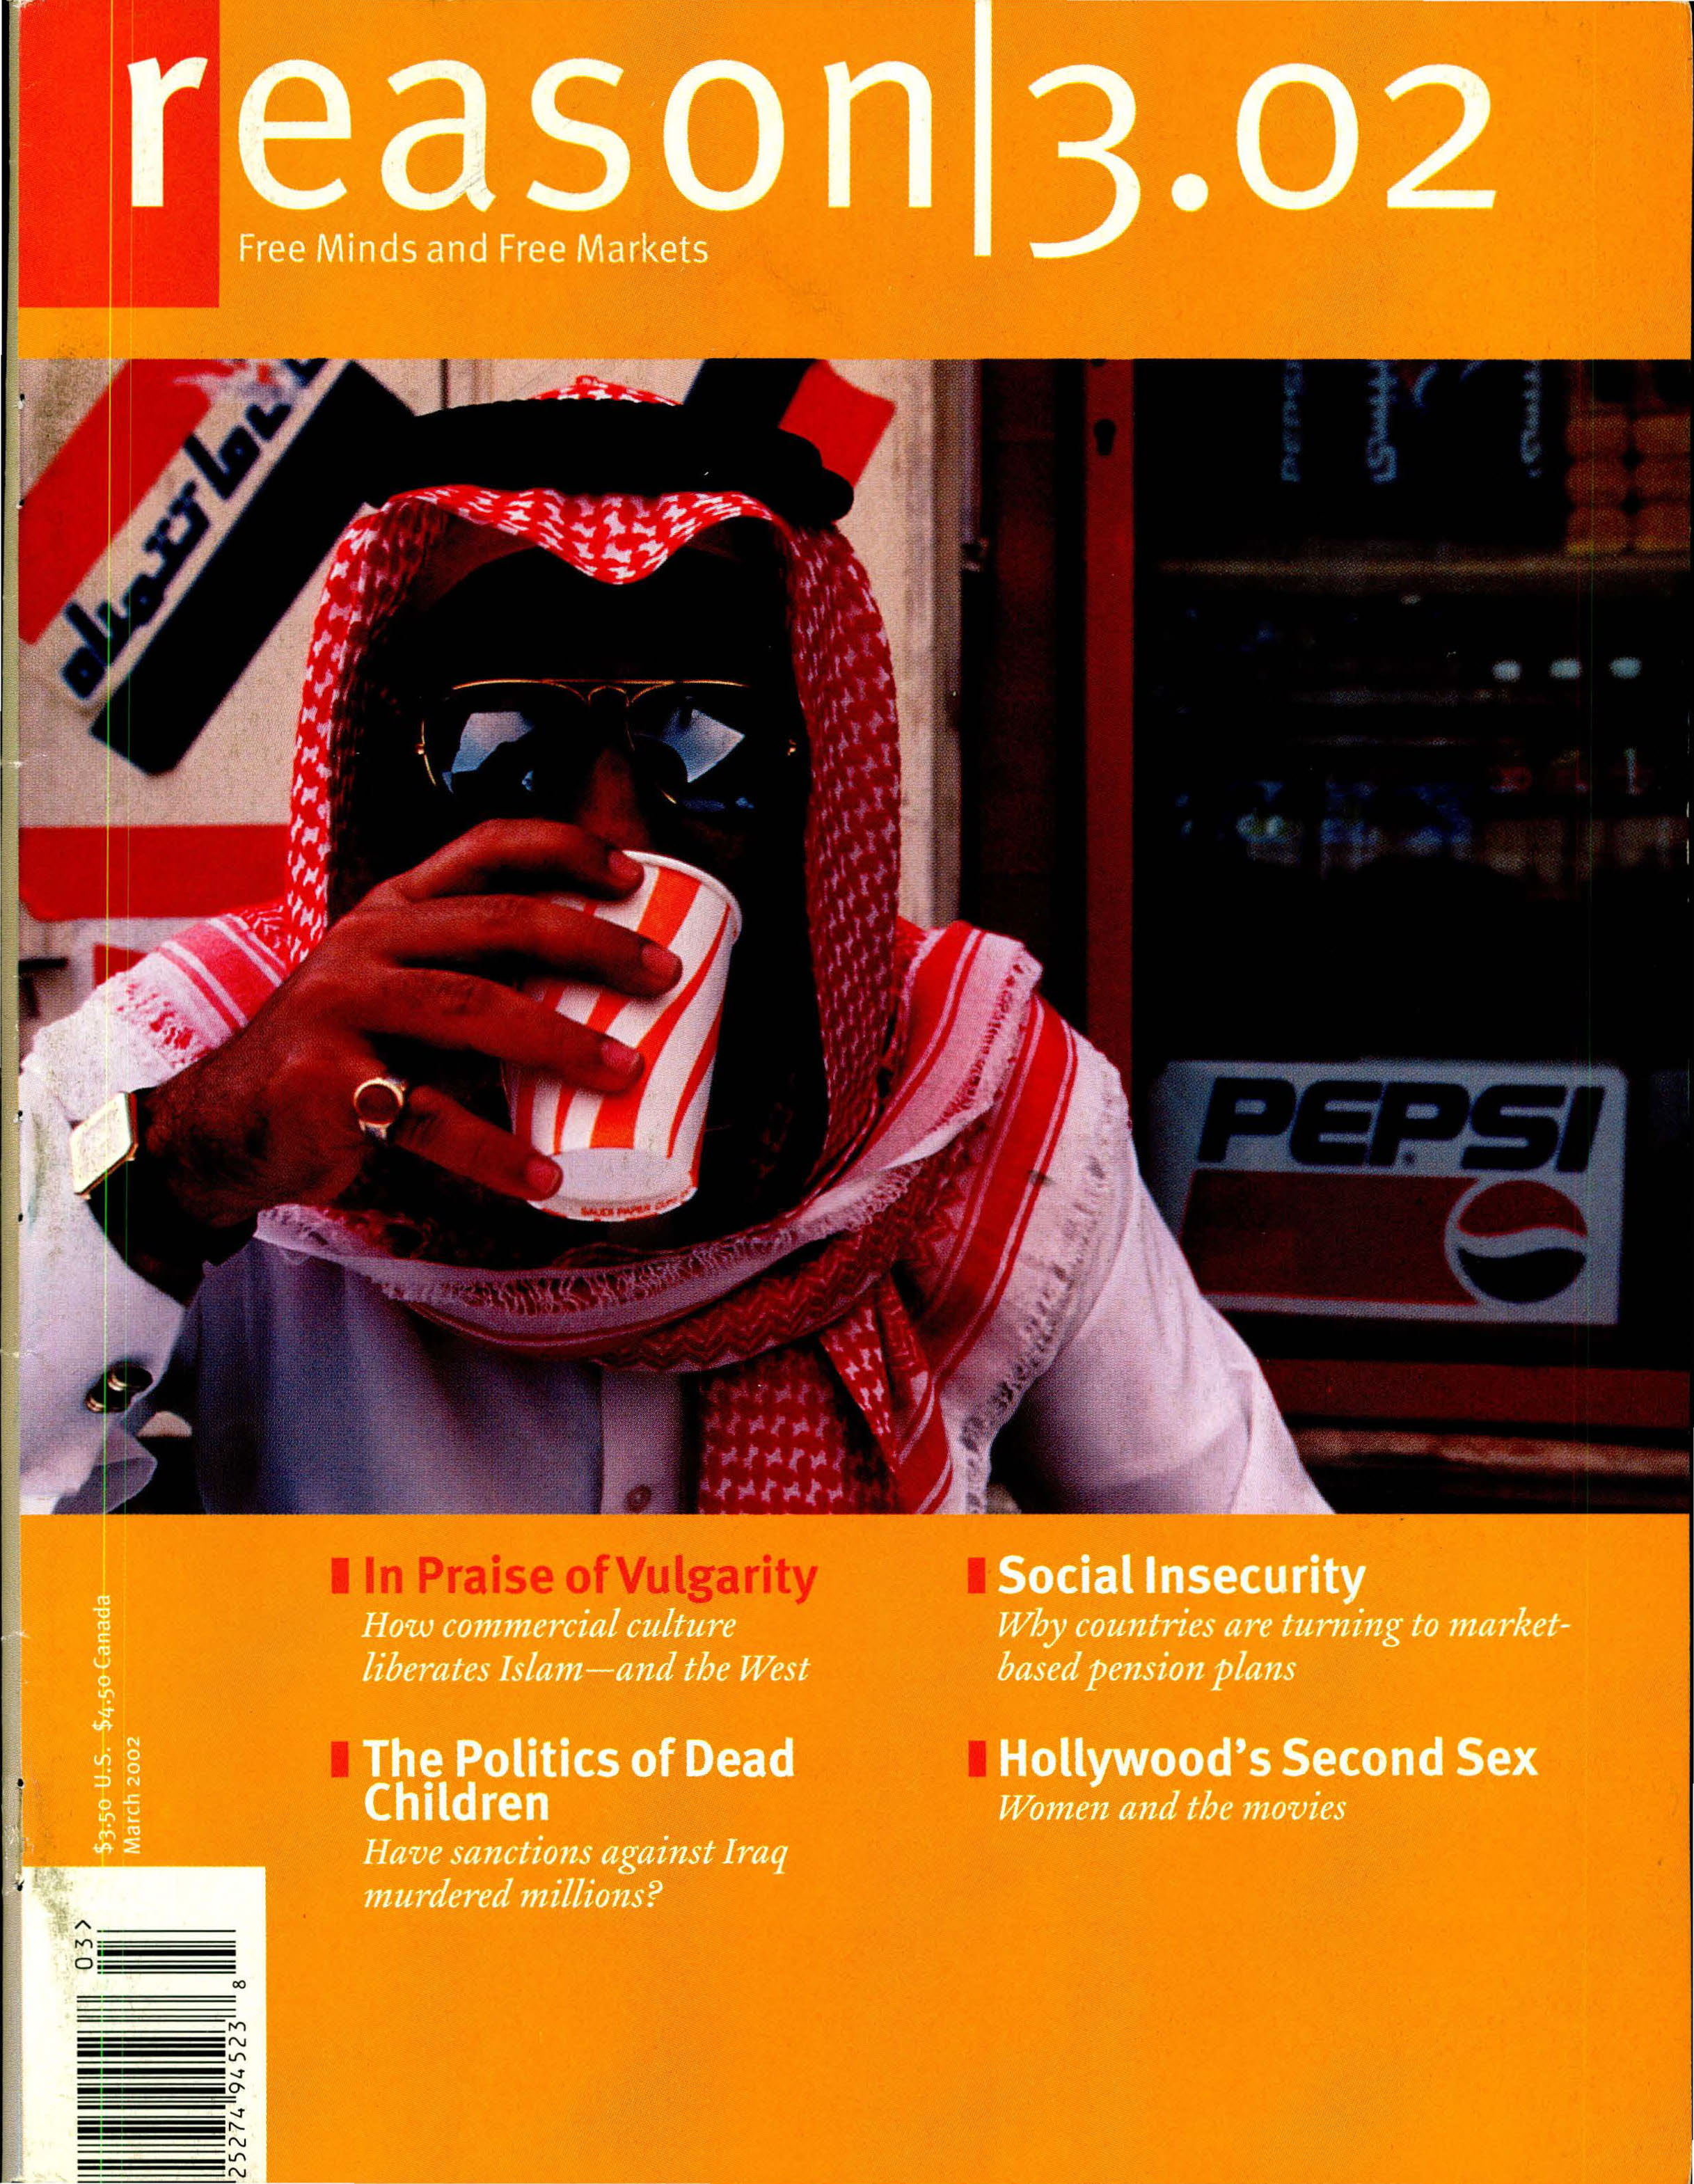 Reason Magazine, March 2002 cover image